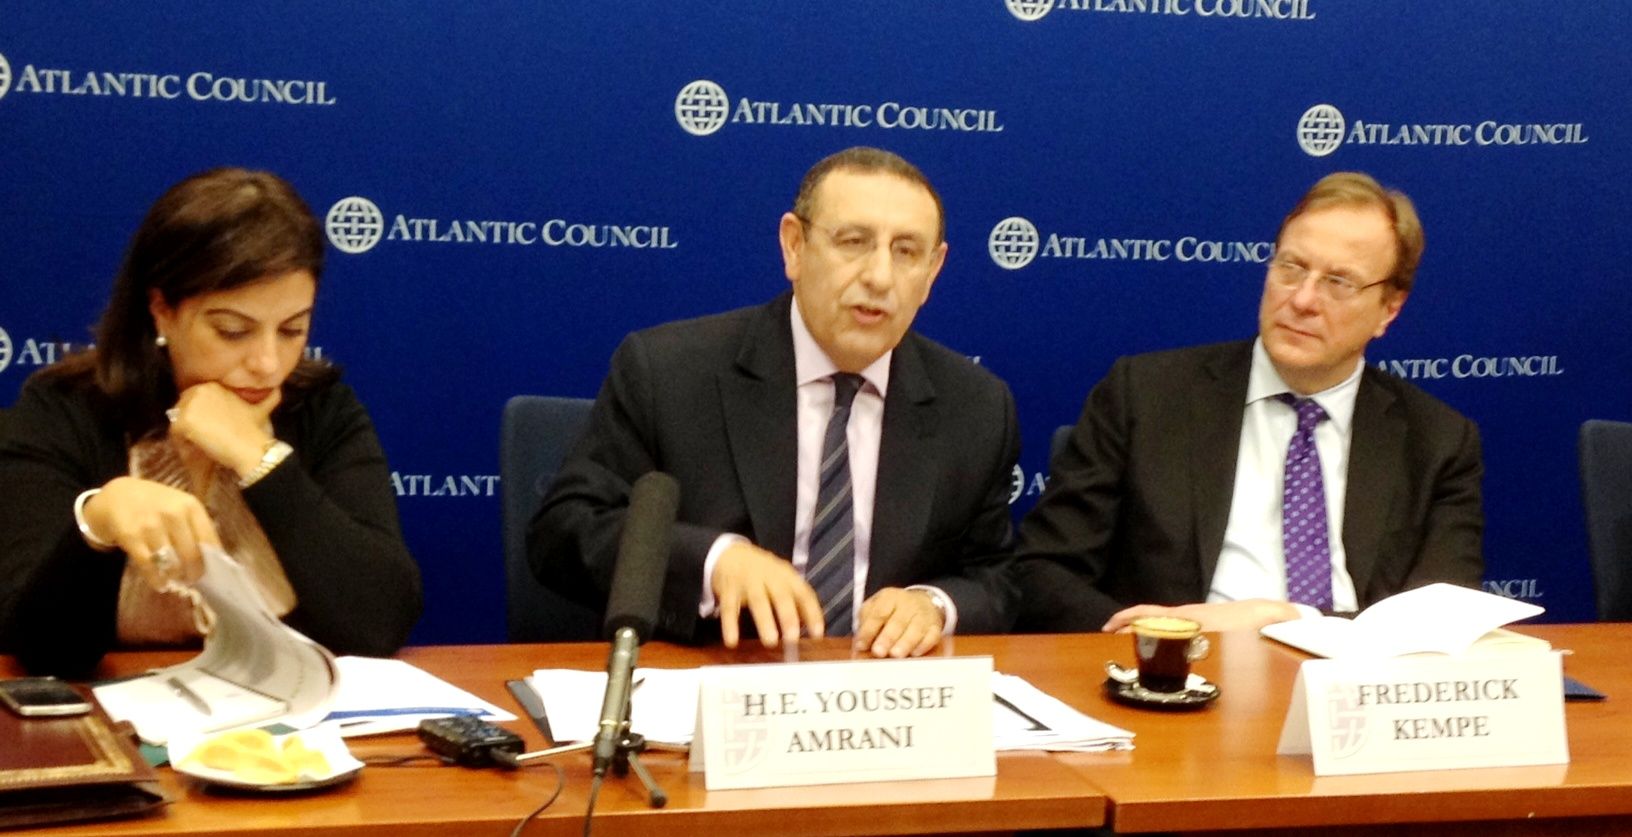 Morocco's Deputy Foreign Minister, Youssef Amrani, speaks at Atlantic Council forum in Washington, DC on Dec. 3.